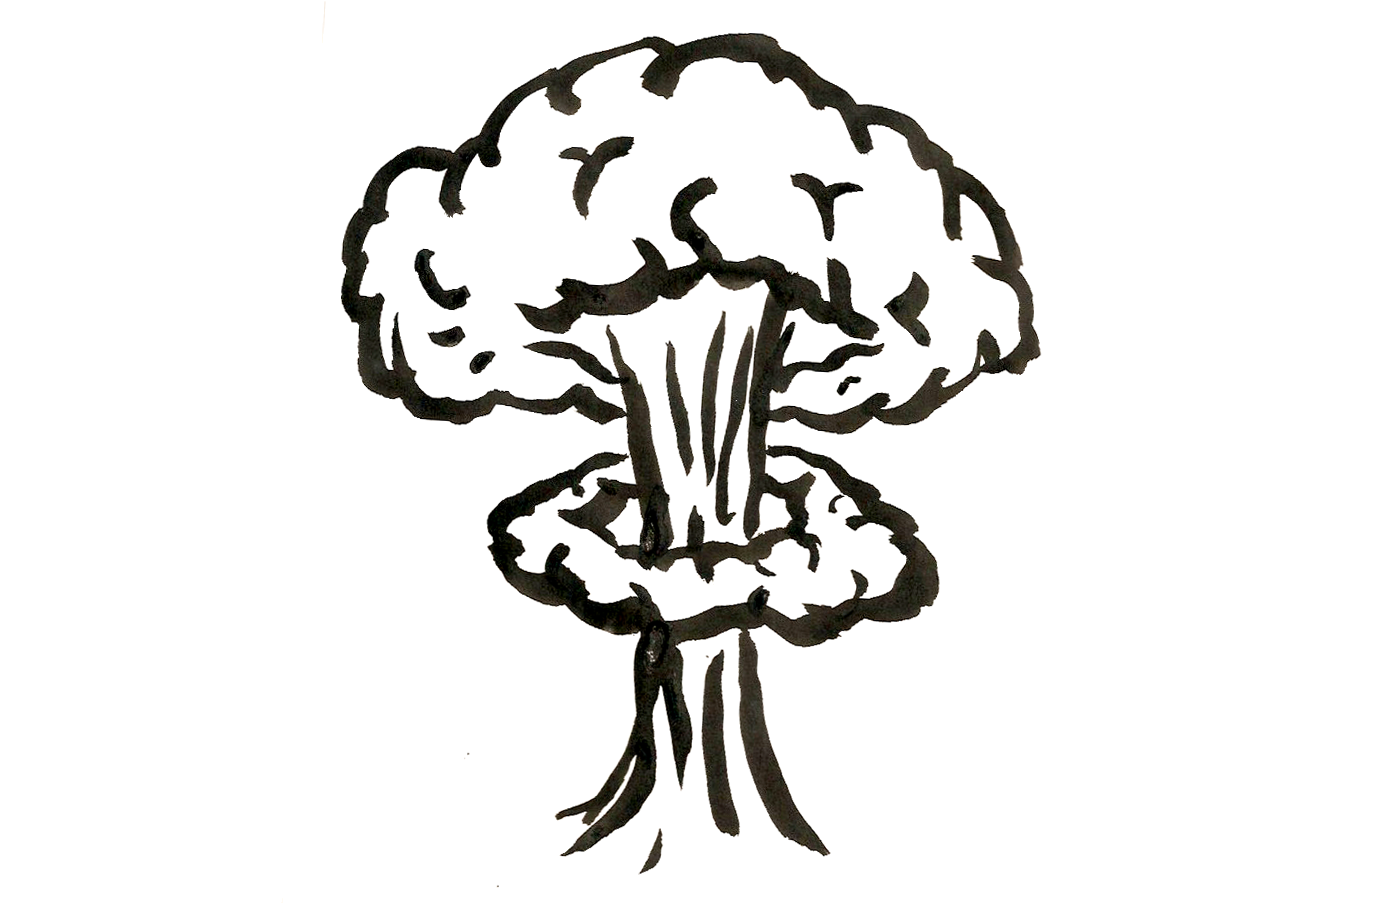 image royalty free Drawn explosions nuclear blast. Shroom drawing easy